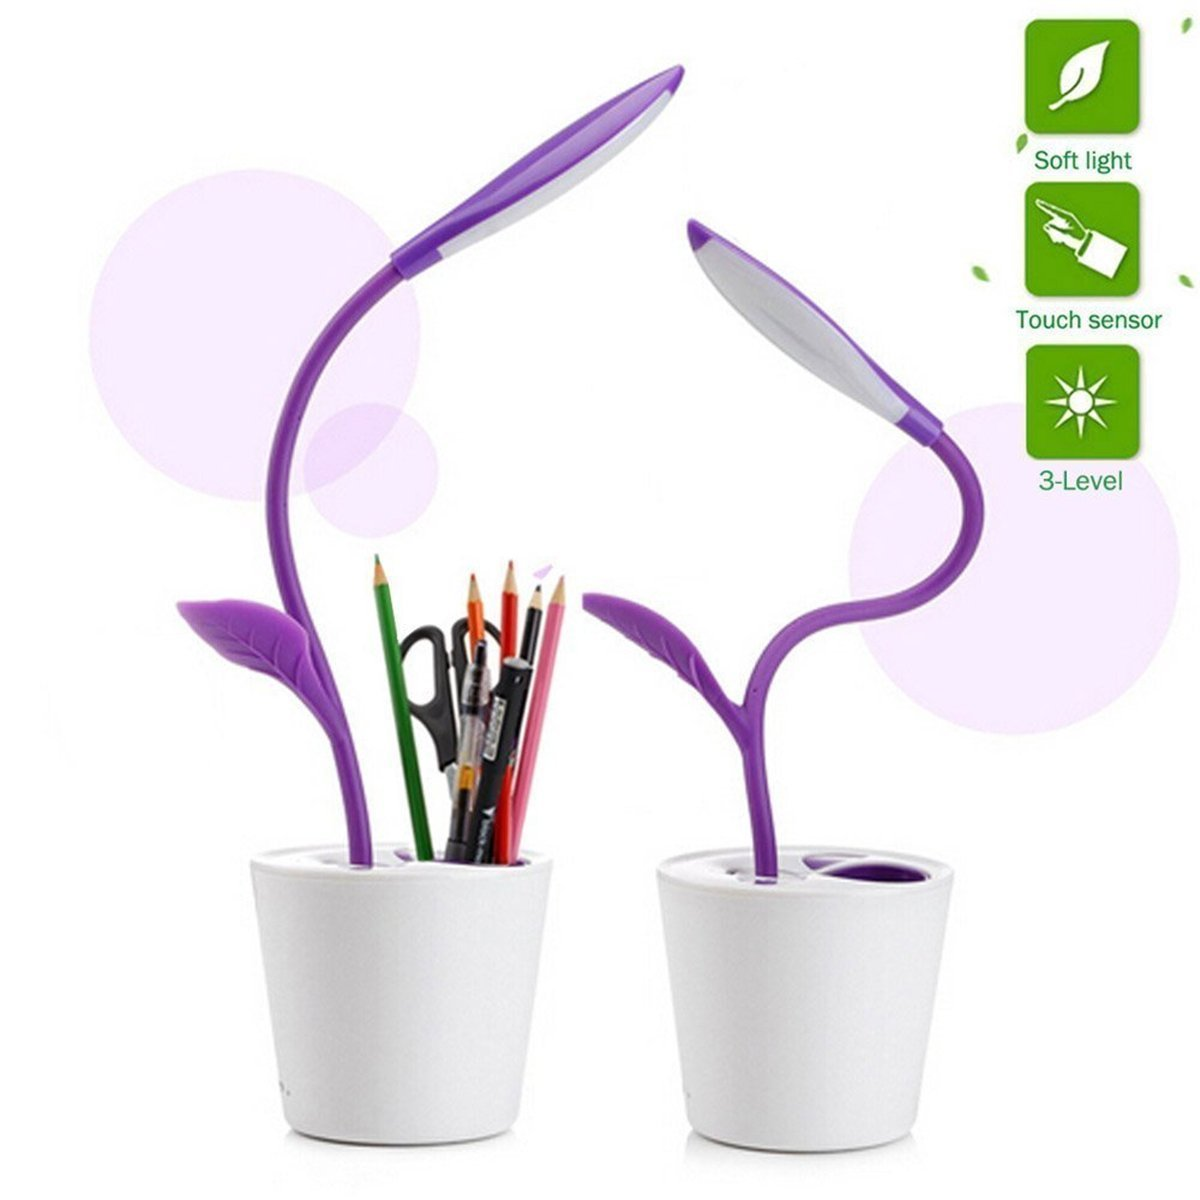 SheShy Flexible USB Touch LED Desk Lamp with 3-Level Dimmer and Decor Plant Pencil Anti-myopia Professional Eye Protection Lamp (Purple)